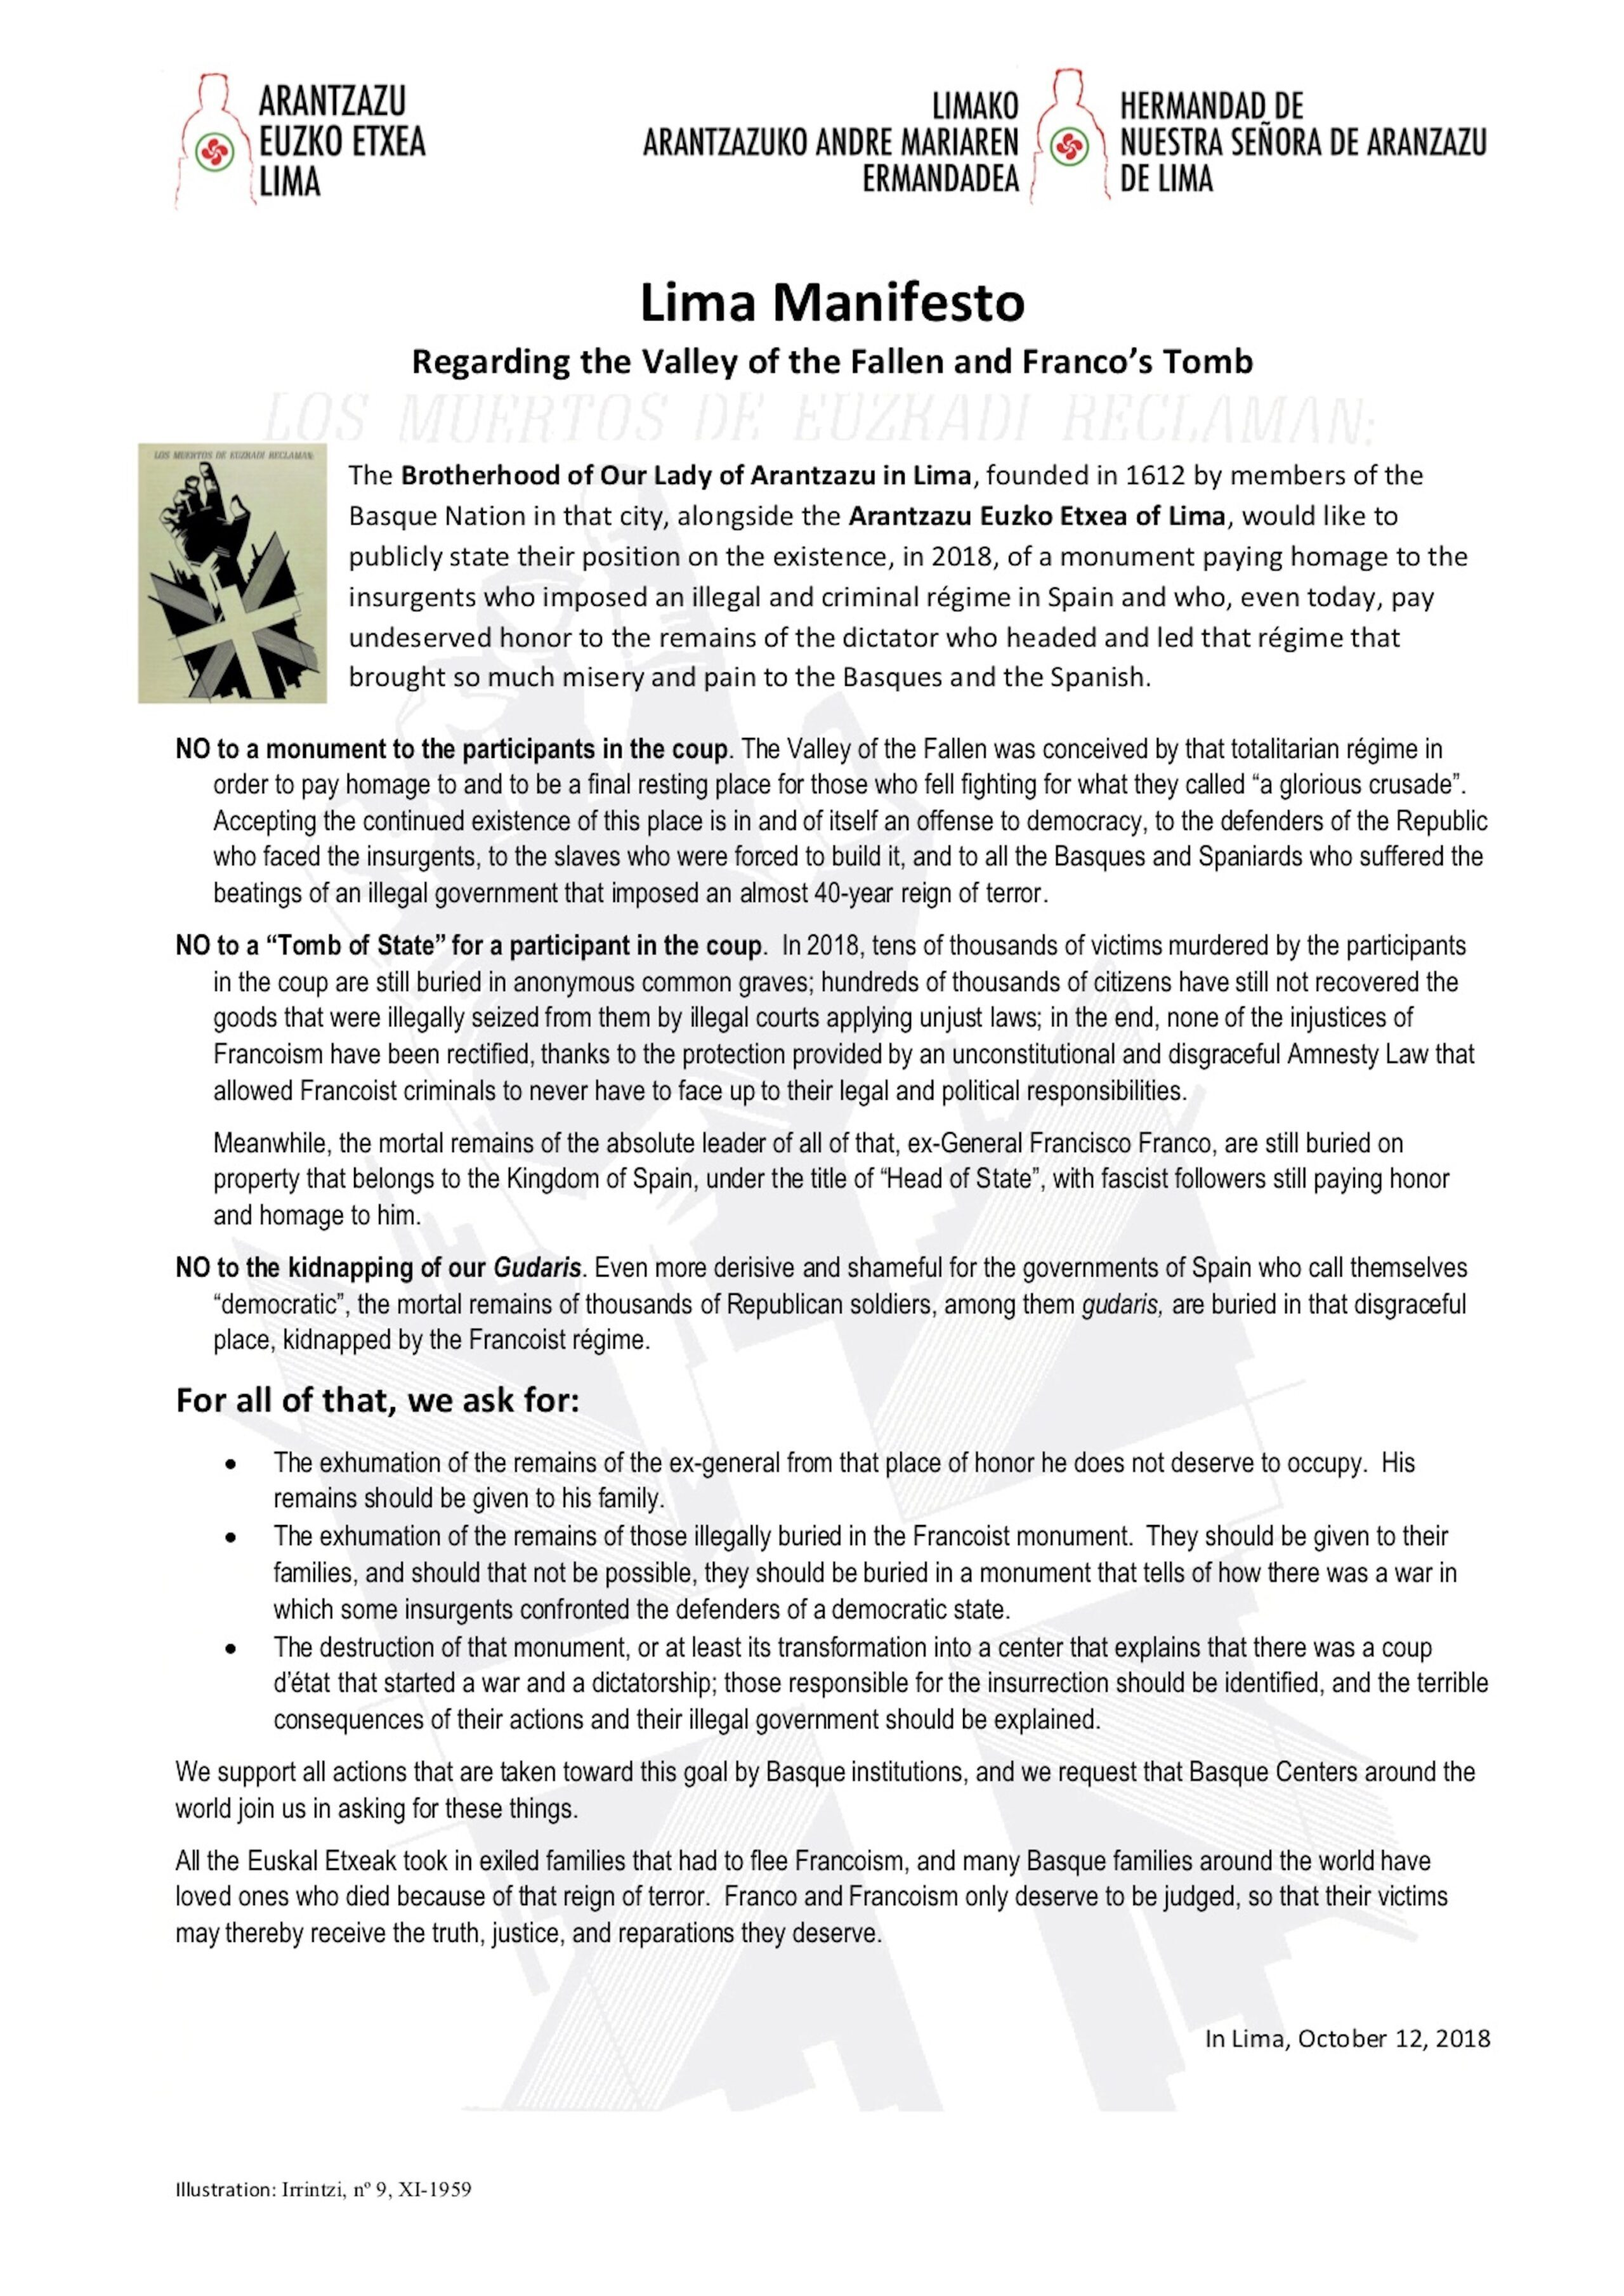 Lima Manifesto Regarding the Valley of the Fallen and Franco's Tomb